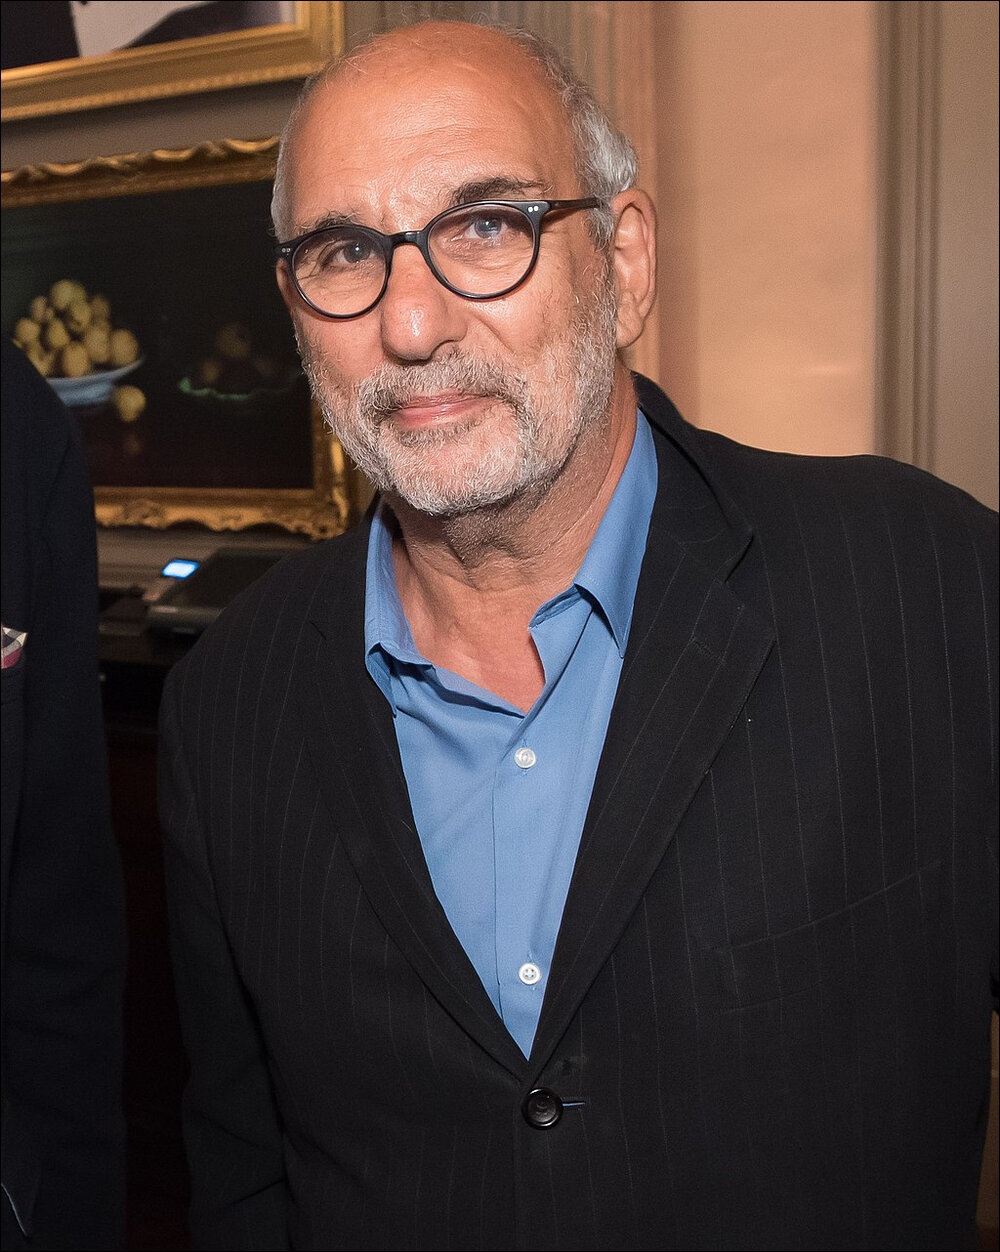 Former BBC2 controller and hacking victim Alan Yentob (Courtesy of the Financial Times)